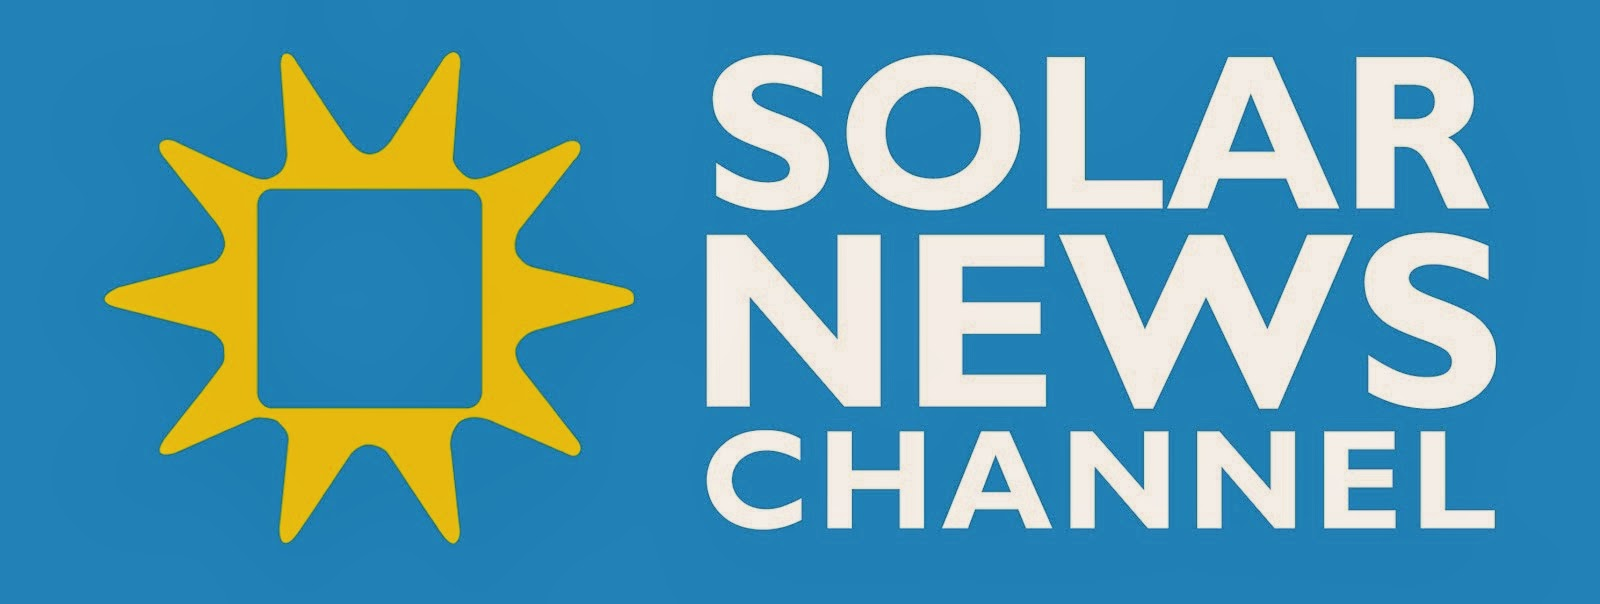 SOLAR NEWS CHANNEL MANAILA